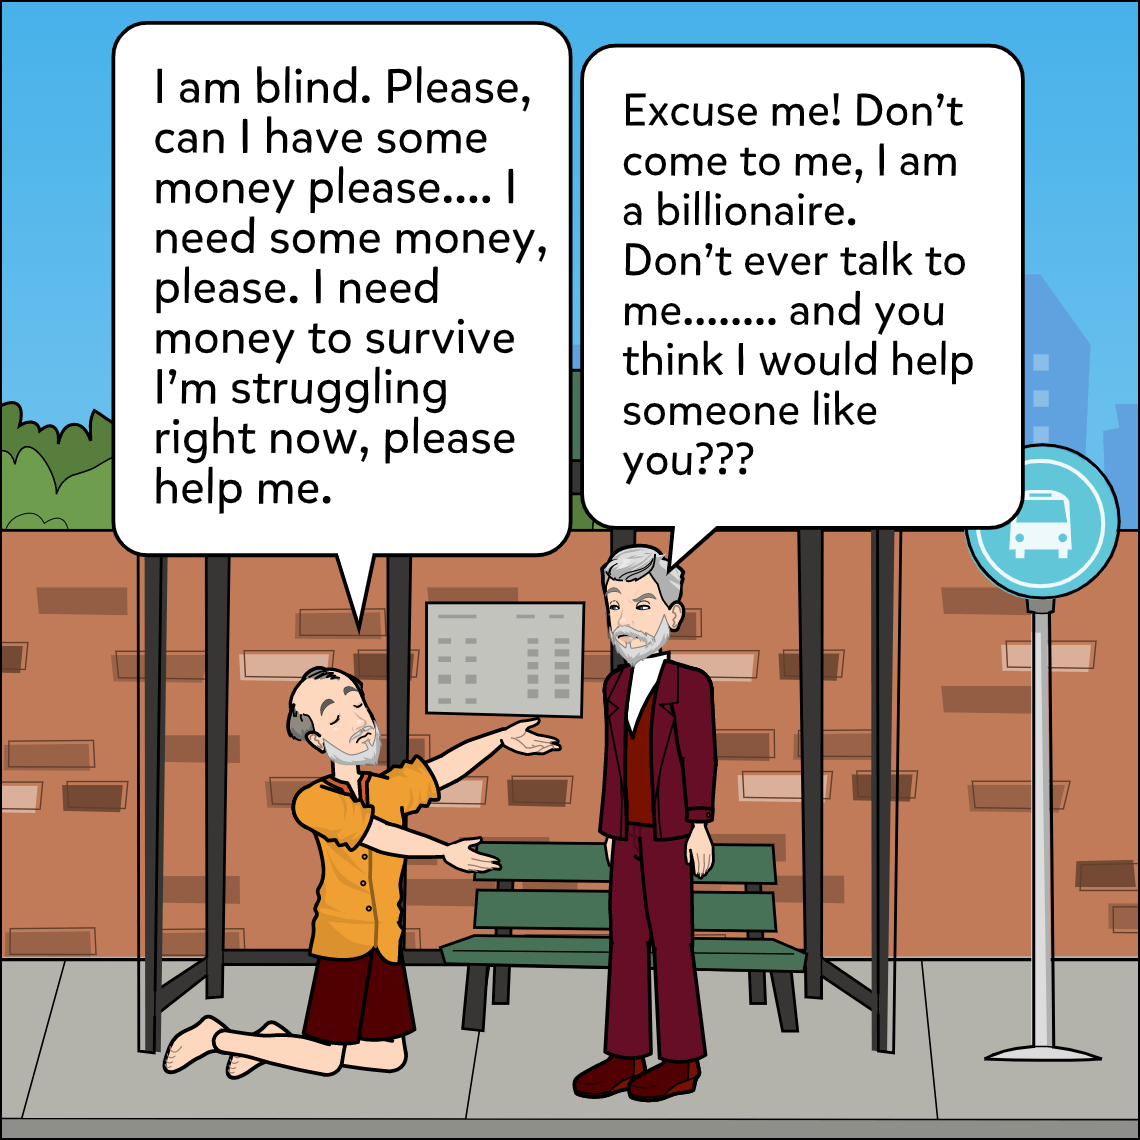 inspire donations to charity lesson exemplar comic panel 1